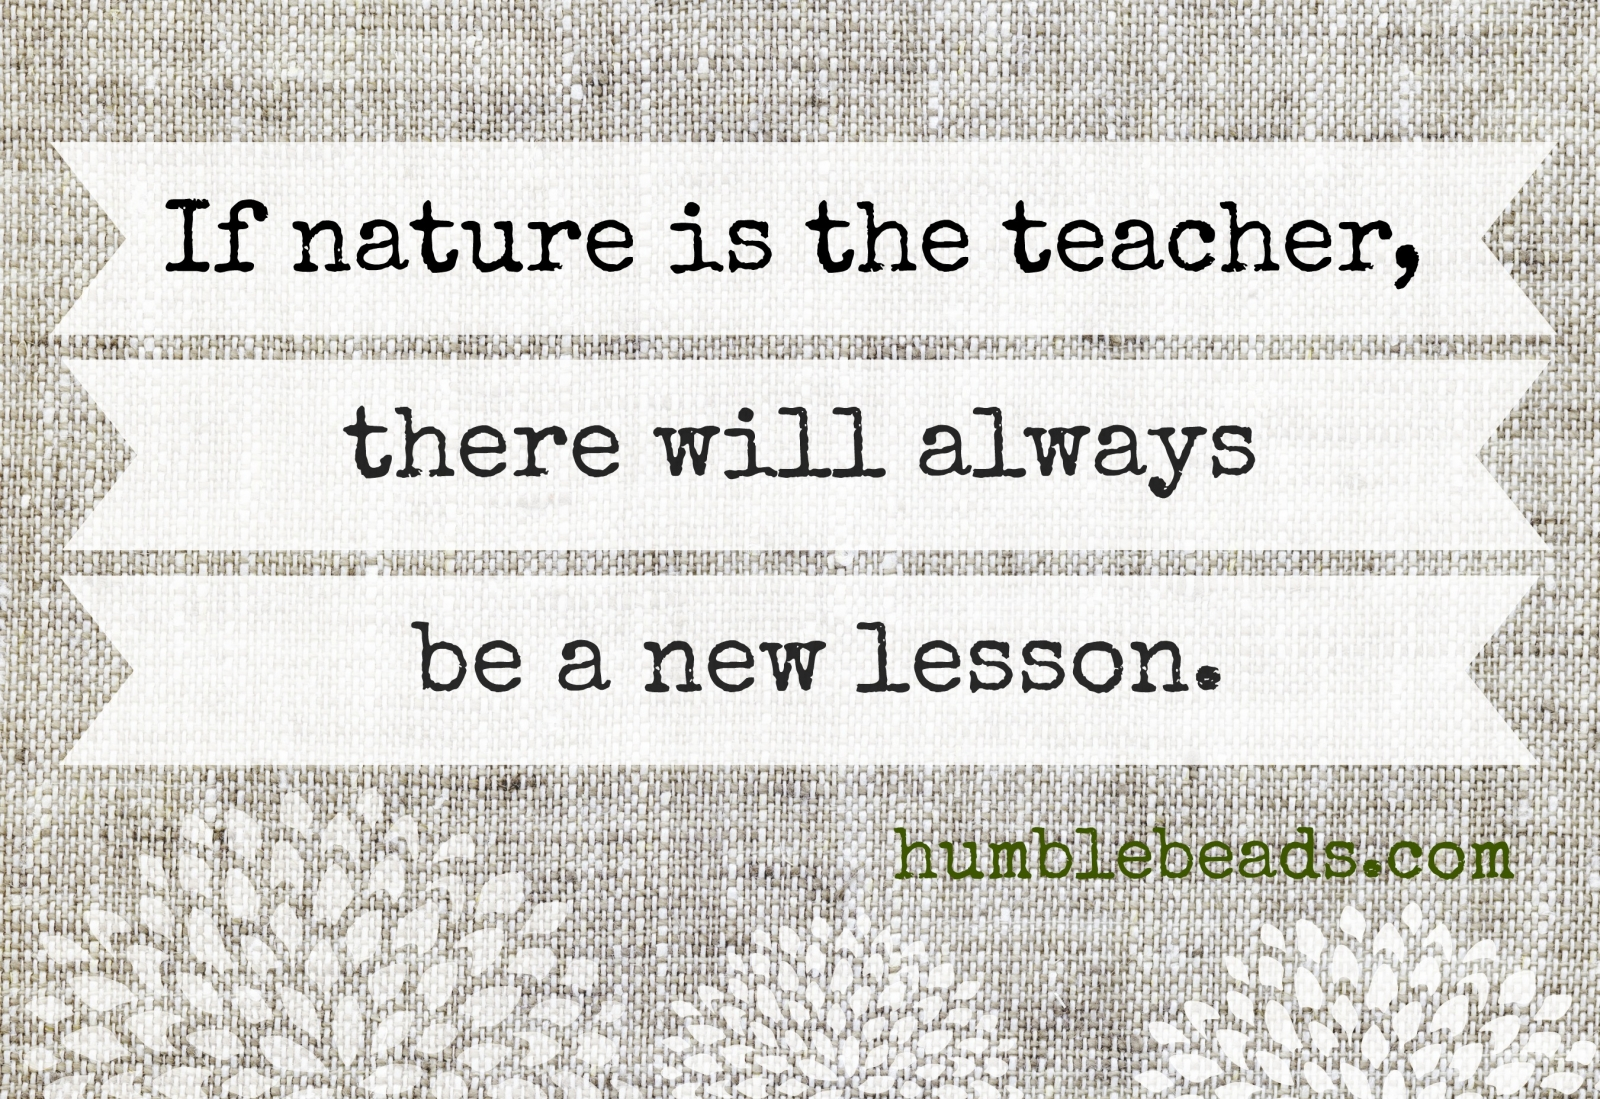 If nature is the teacher, there will always be a new lesson.